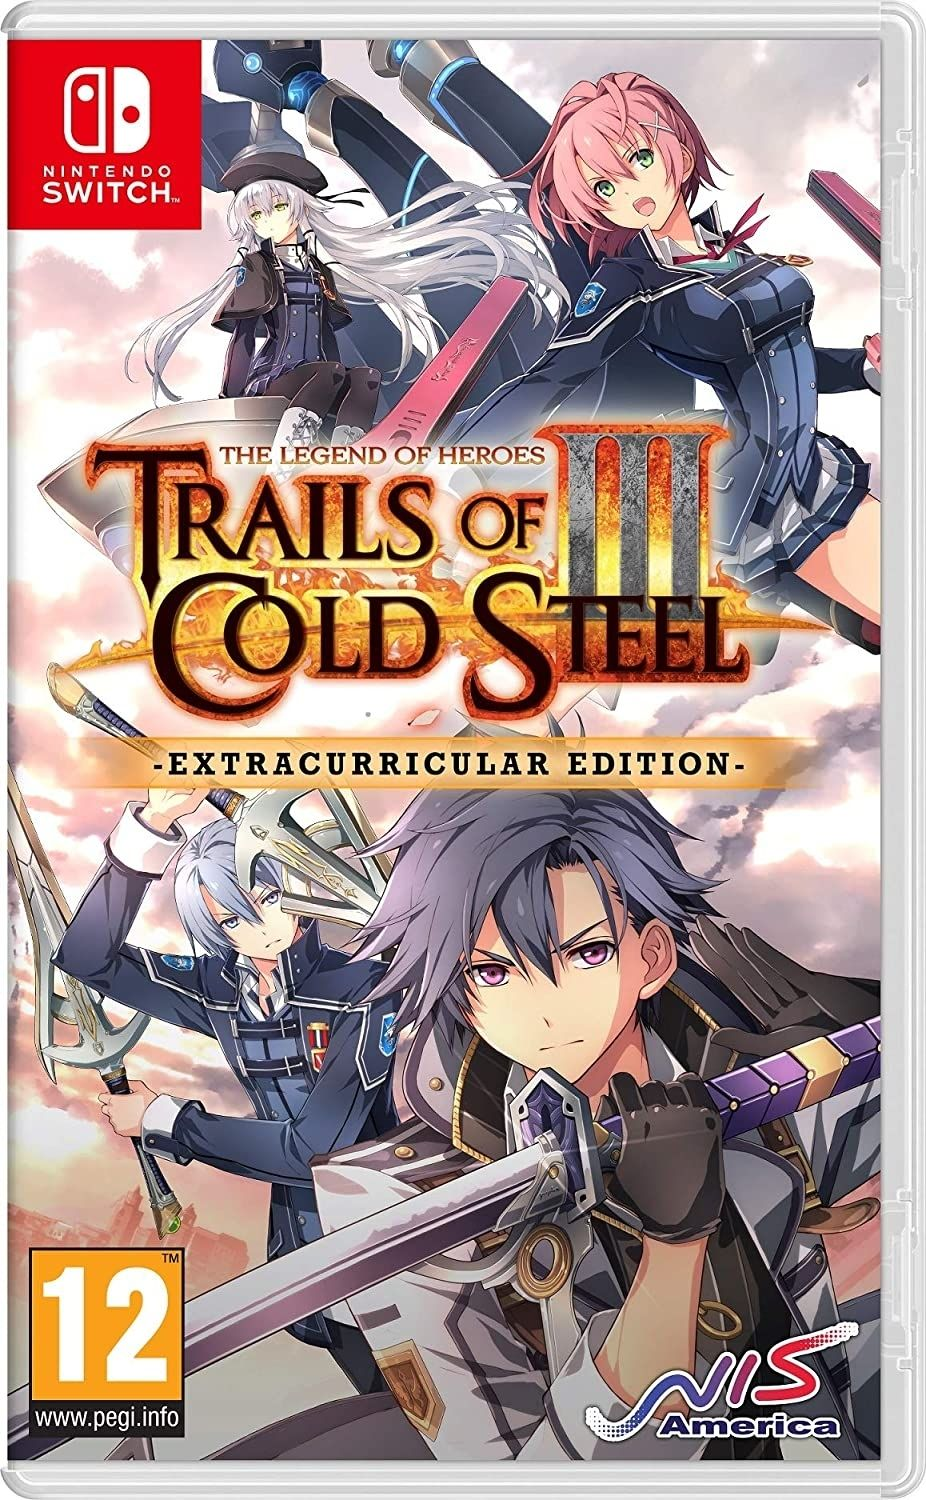 The Legend of Heroes: Trails of Cold Steel III - Extracurricular Edition (Nintendo Switch) - 1